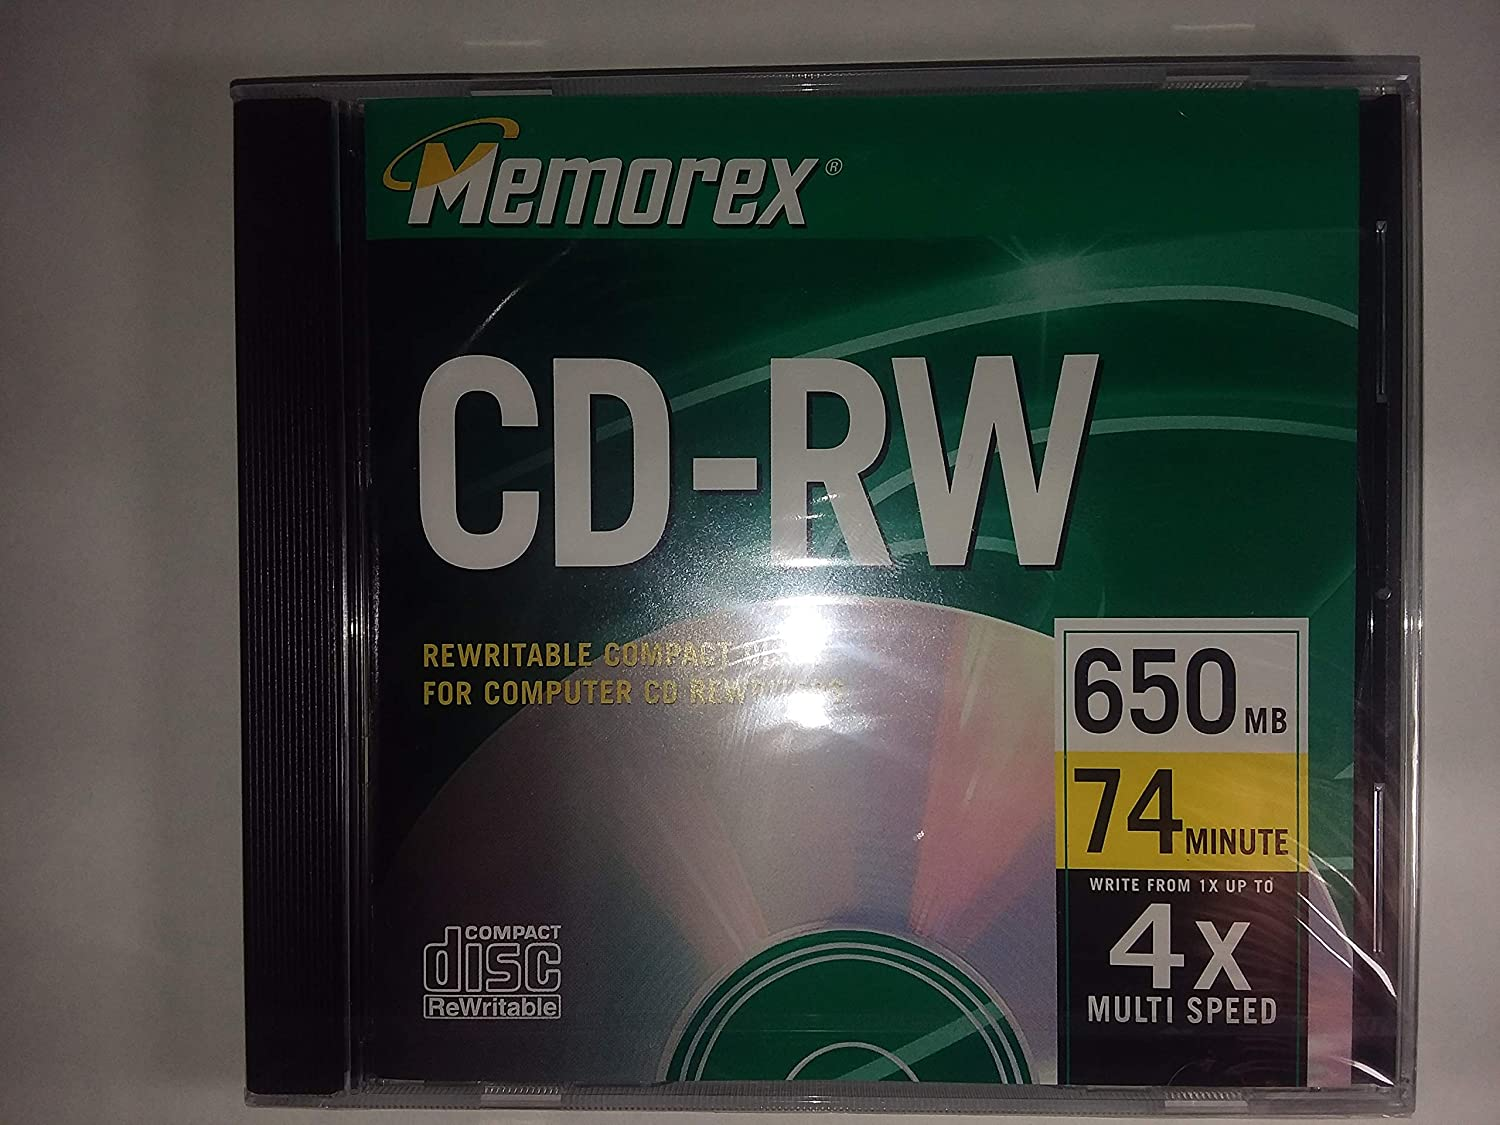 Memorex 650MB/74-Minute 4x Music CD-RW Media LYSB00000JKKZ-CMPTRACCS